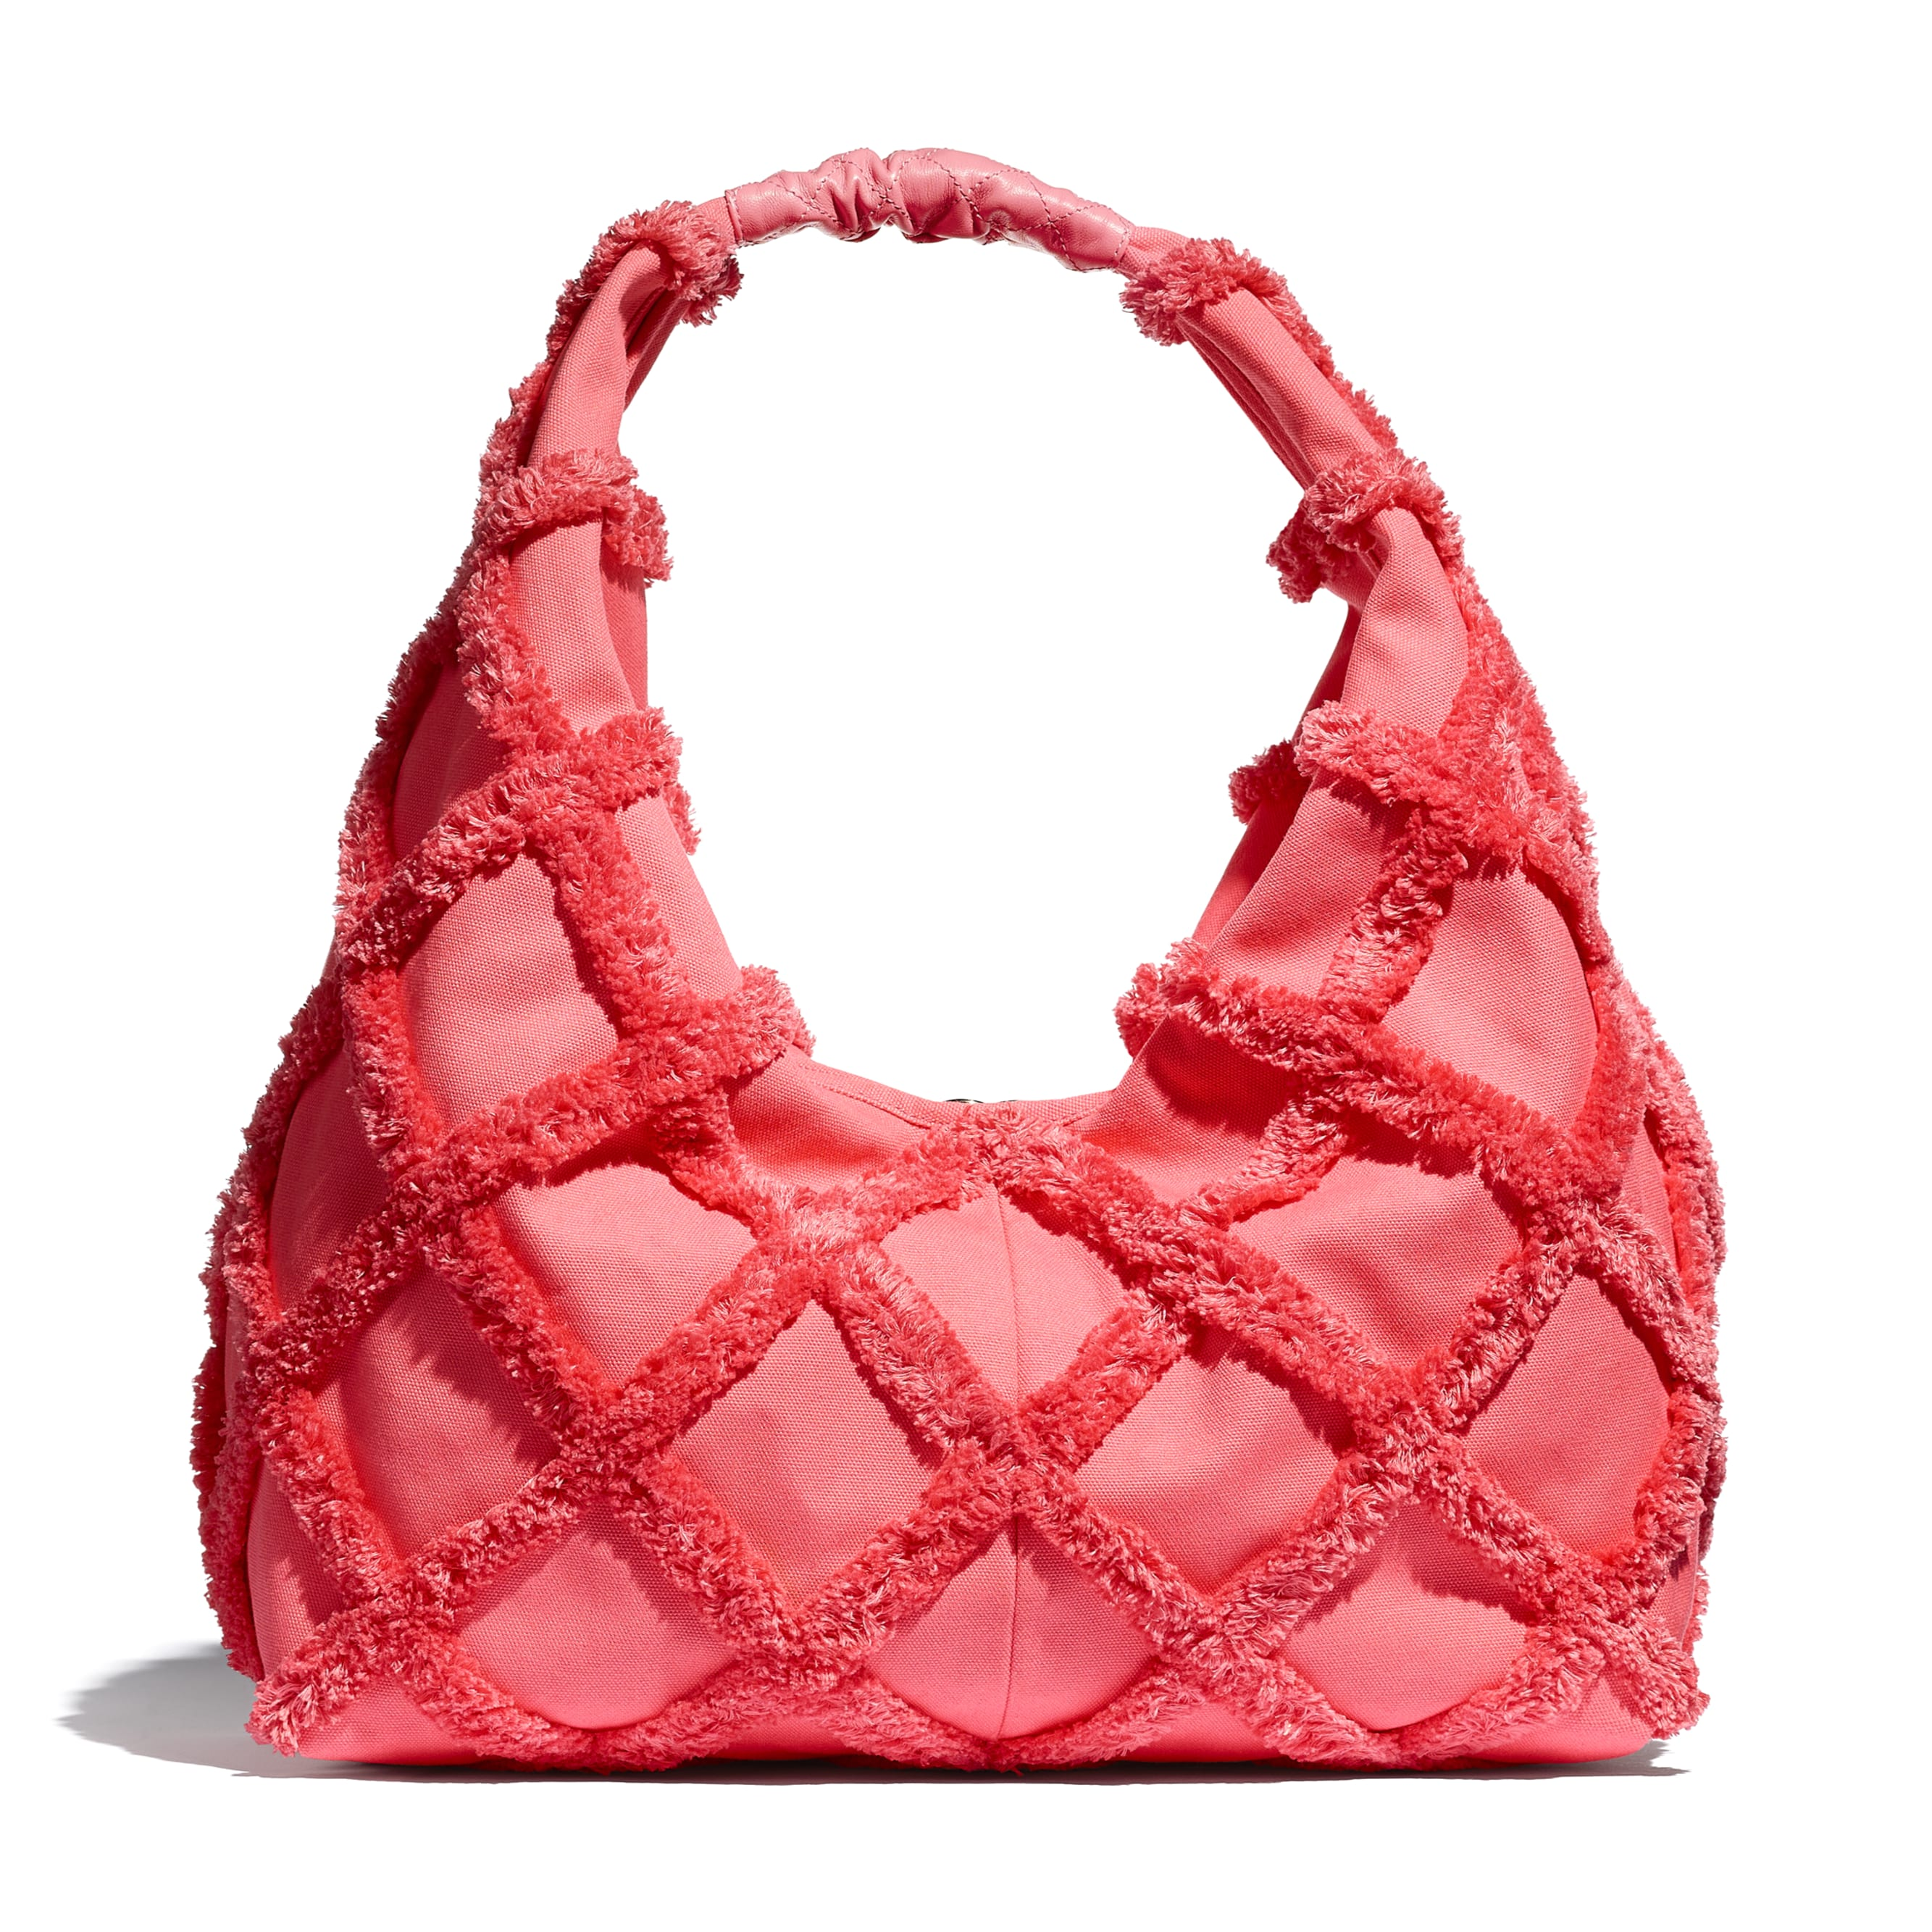 Large Hobo Bag - Coral - Cotton Canvas, Calfskin & Gold-Tone Metal - CHANEL - Alternative view - see standard sized version